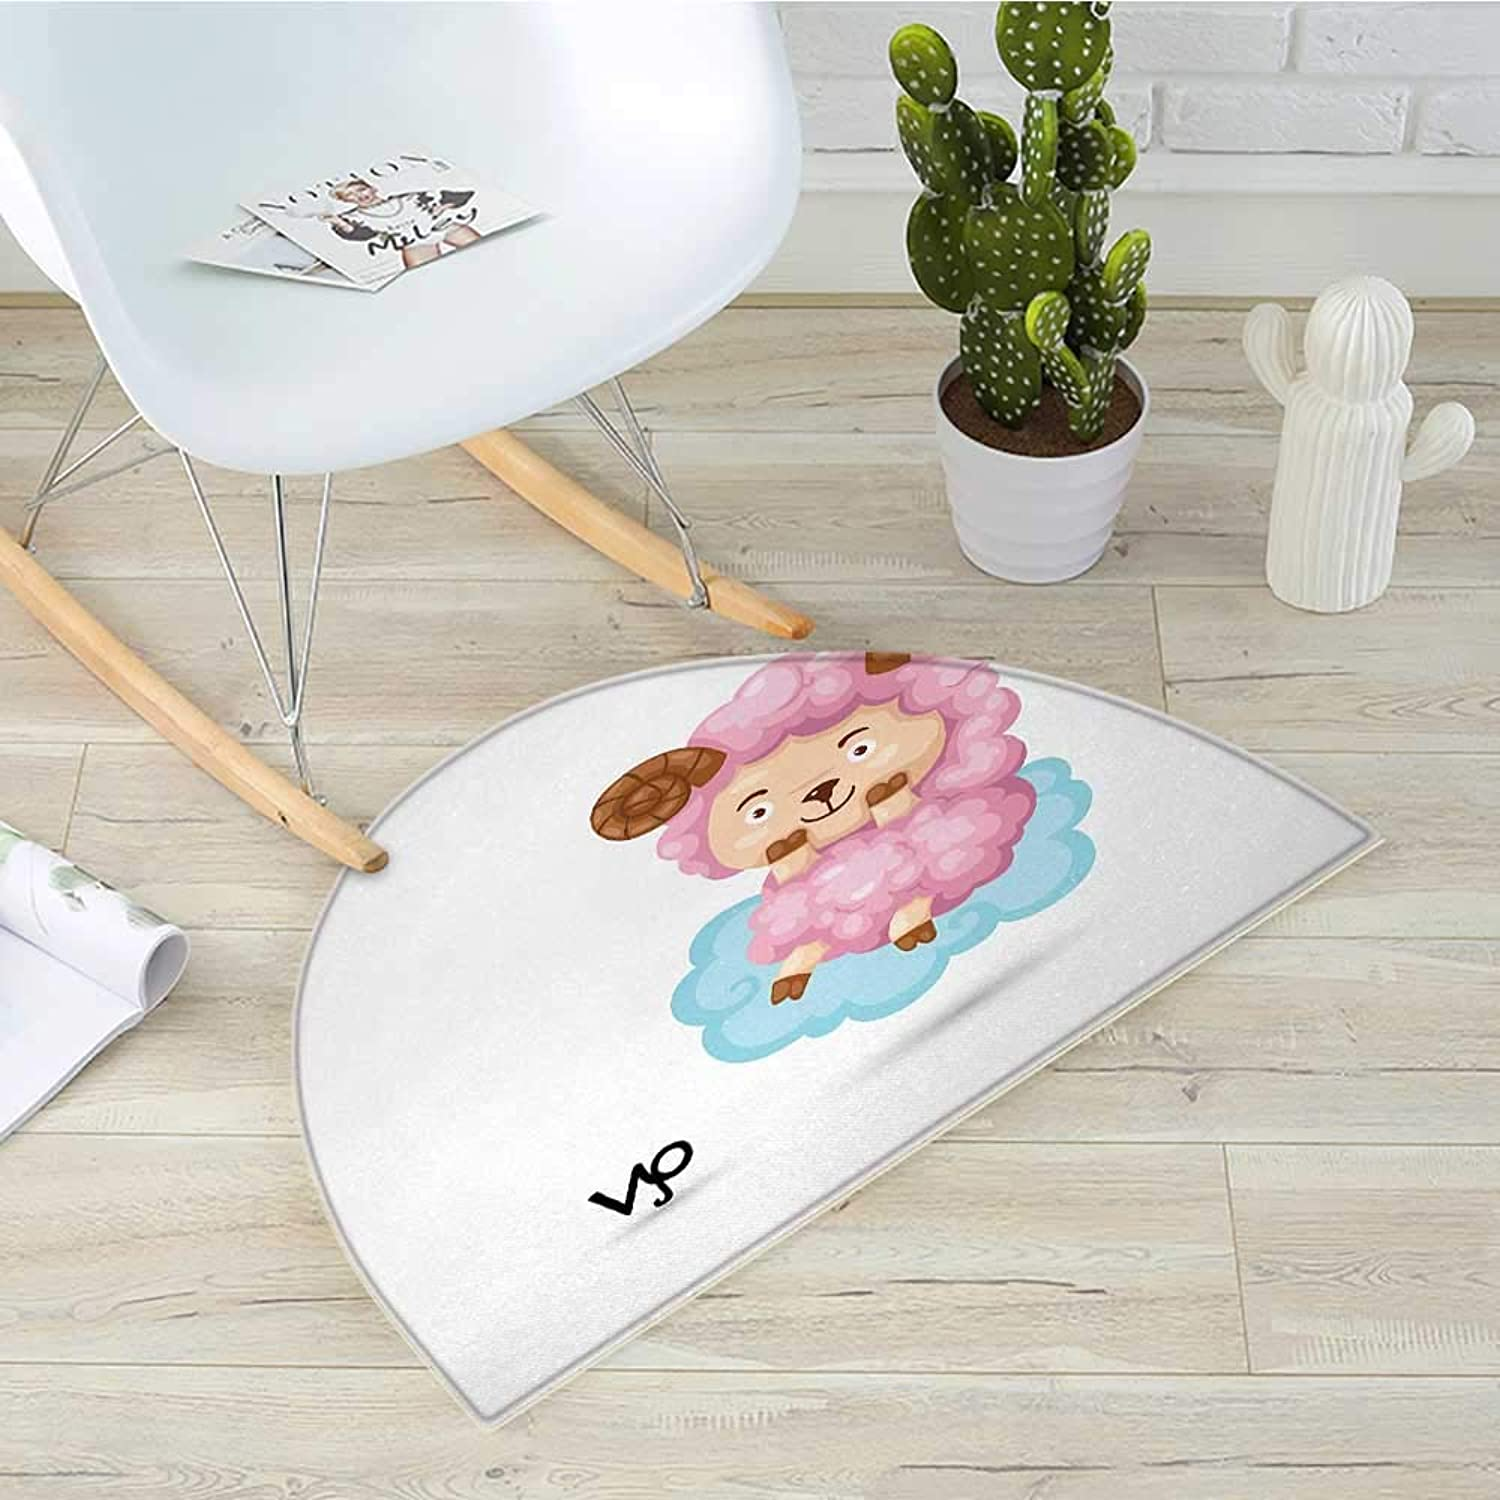 Zodiac Aries Semicircular CushionCartoon Style Funny Sheep Sitting on a bluee Cloud Birth and Future Kids Design Entry Door Mat H 35.4  xD 53.1  Multicolor